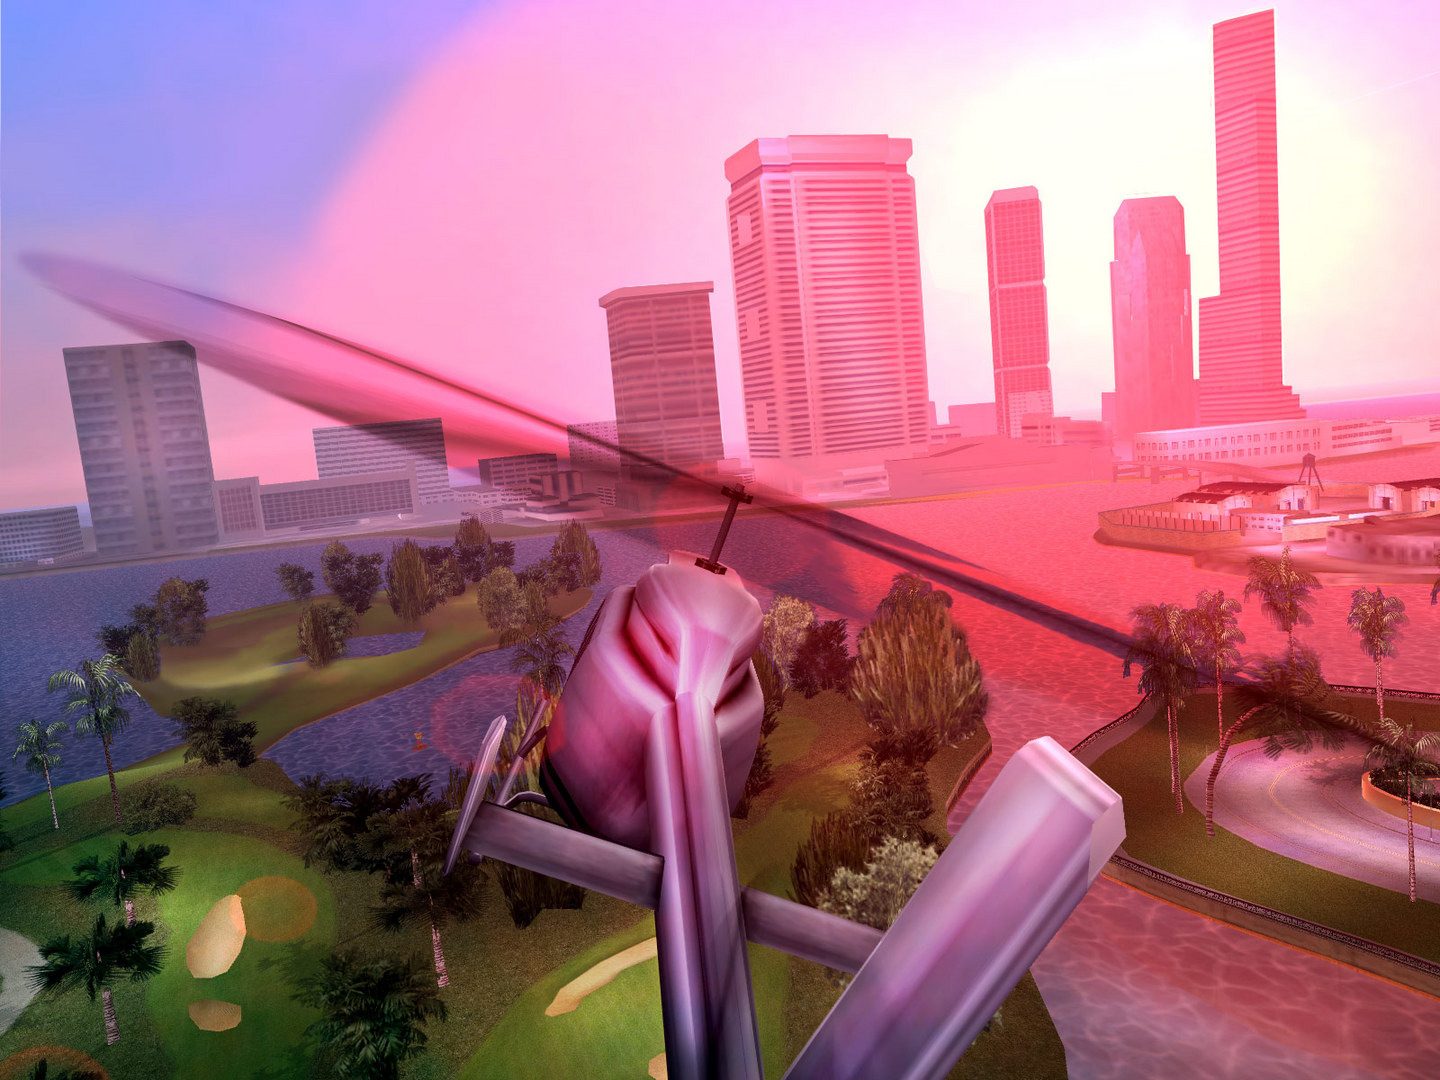 Vice city free download licence gta key Grand Theft